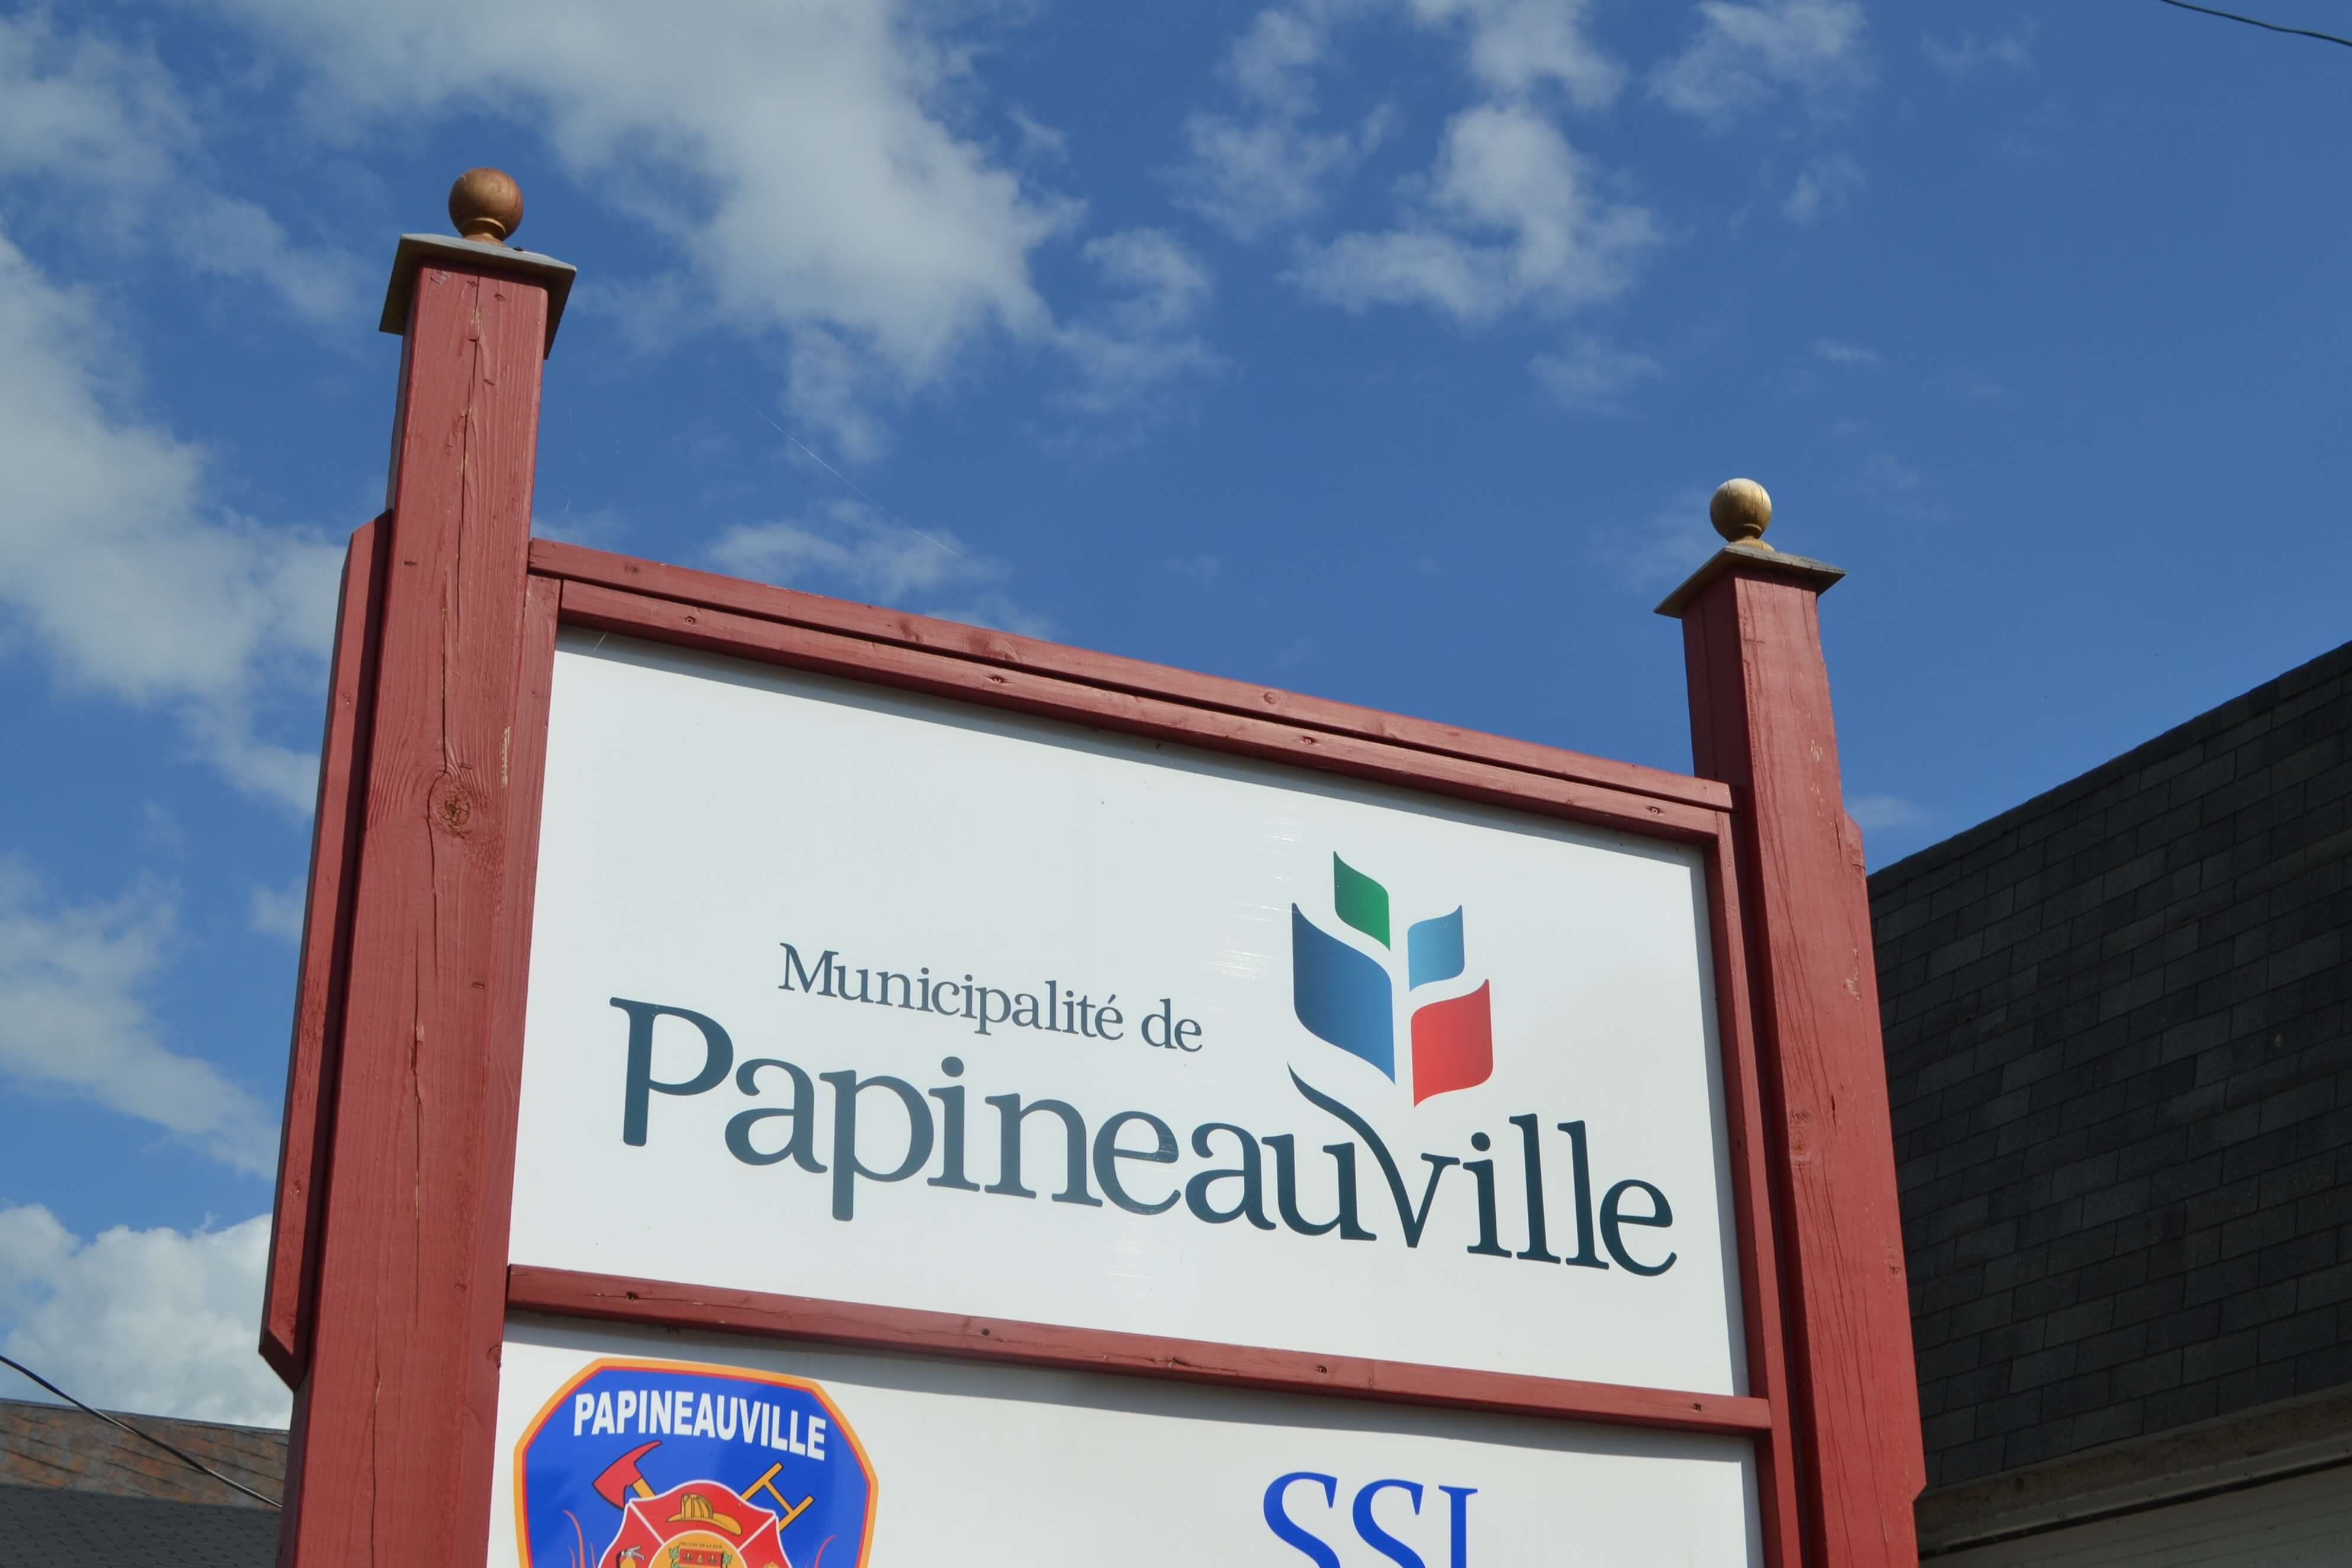 Papineauville